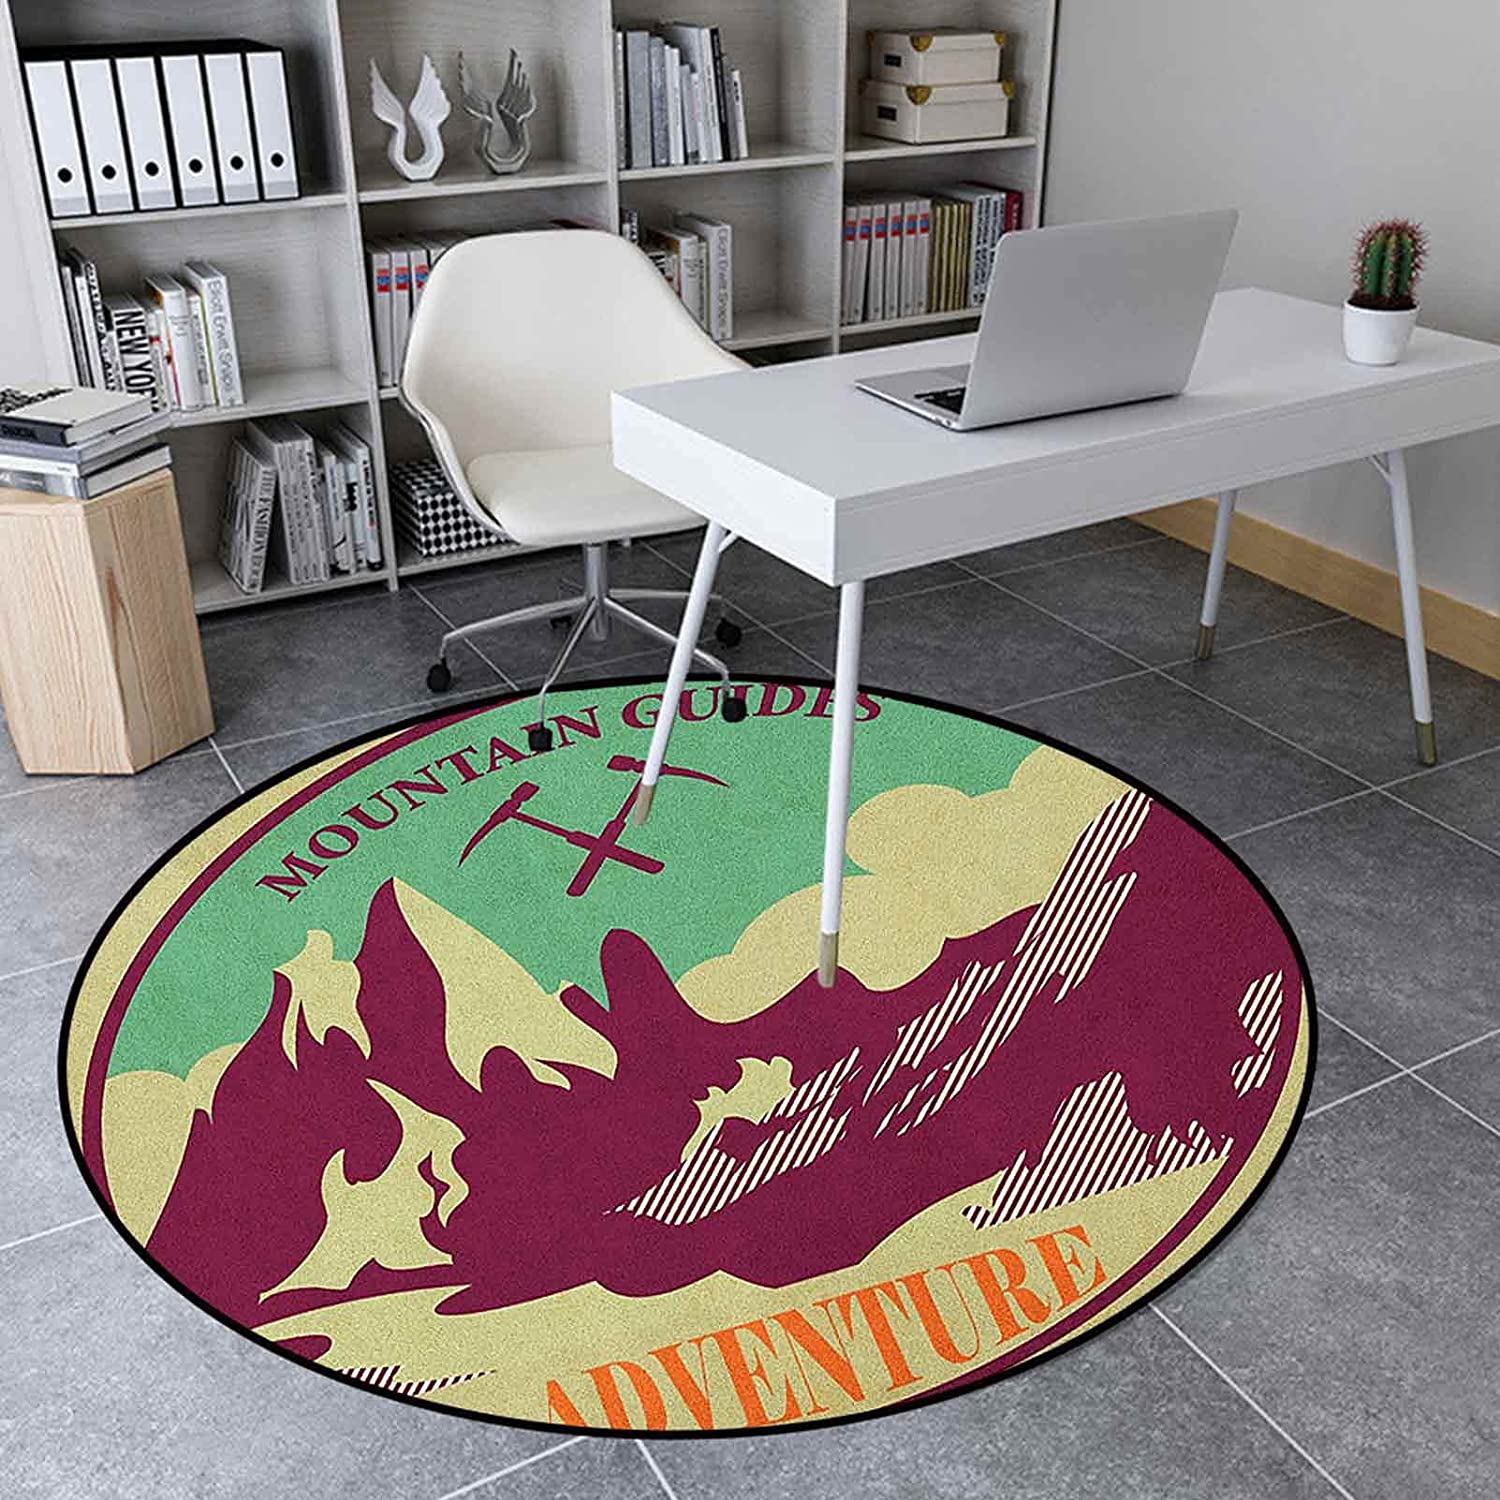 Adventure Round Challenge the lowest price of Japan ☆ Area Free shipping New Rug 3.9 Ft Living Inches Room Rugs Jo for